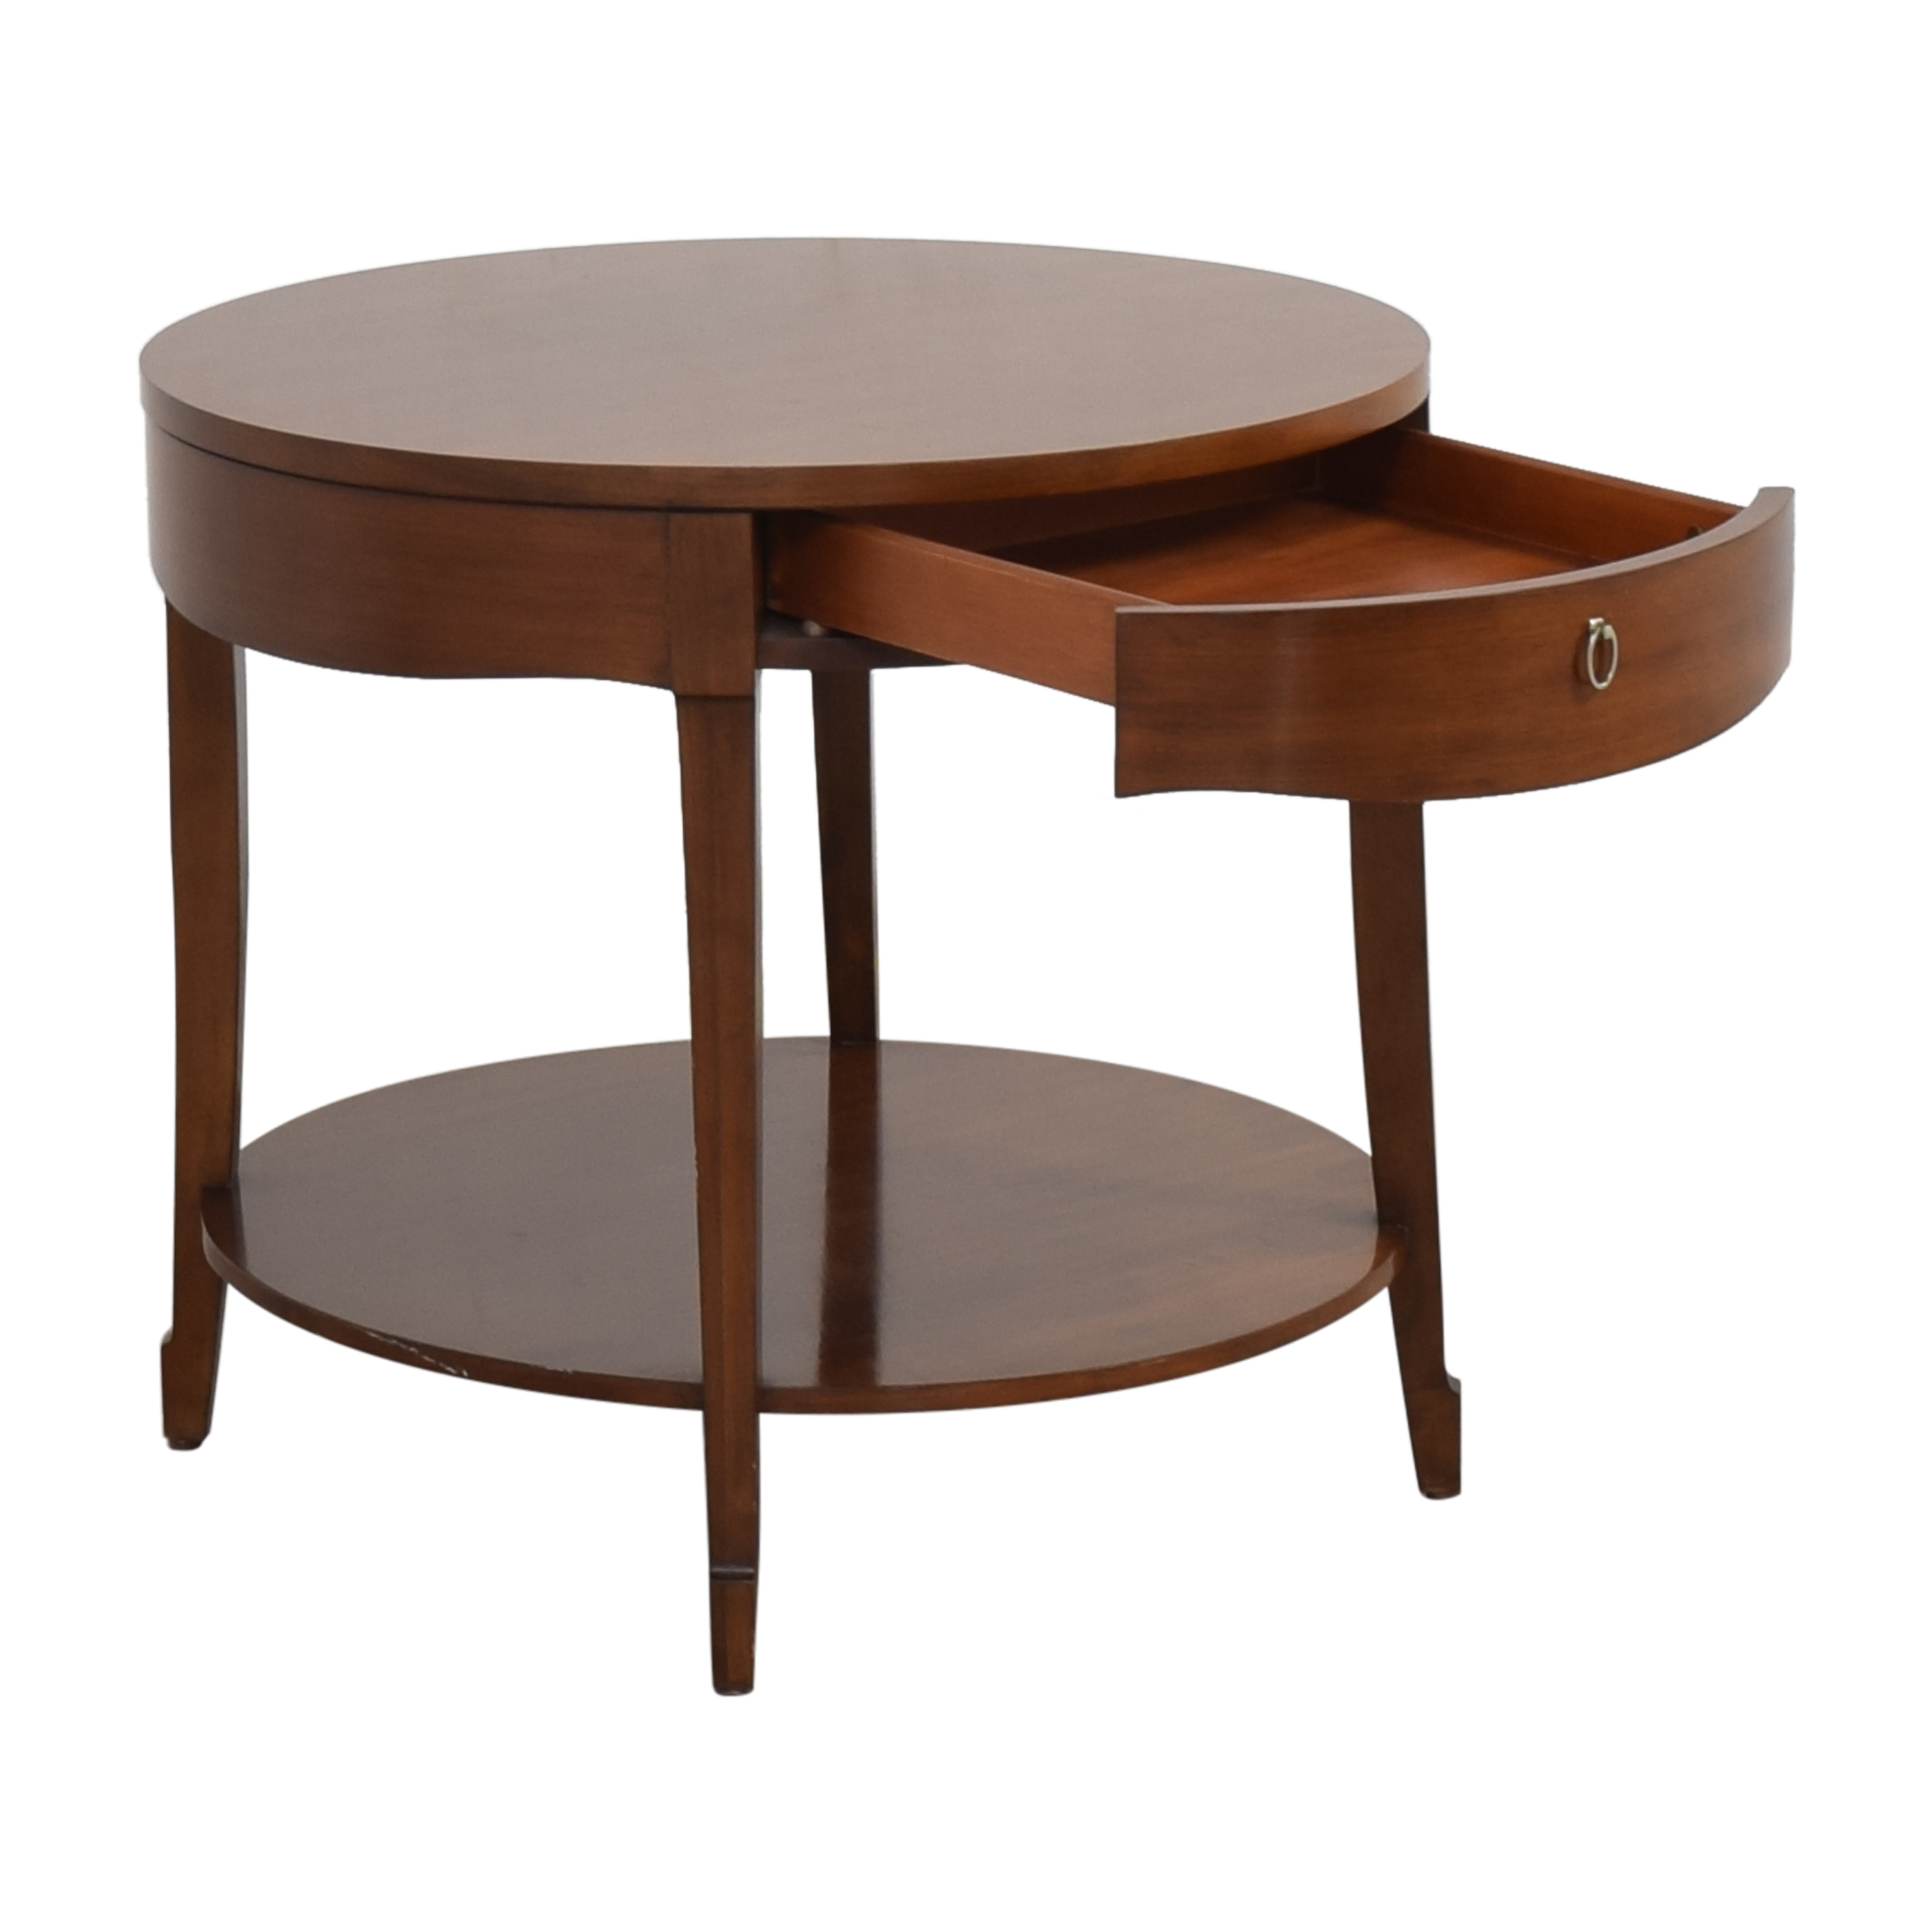 Henredon Furniture Henredon Furniture Round End Table with Drawer End Tables